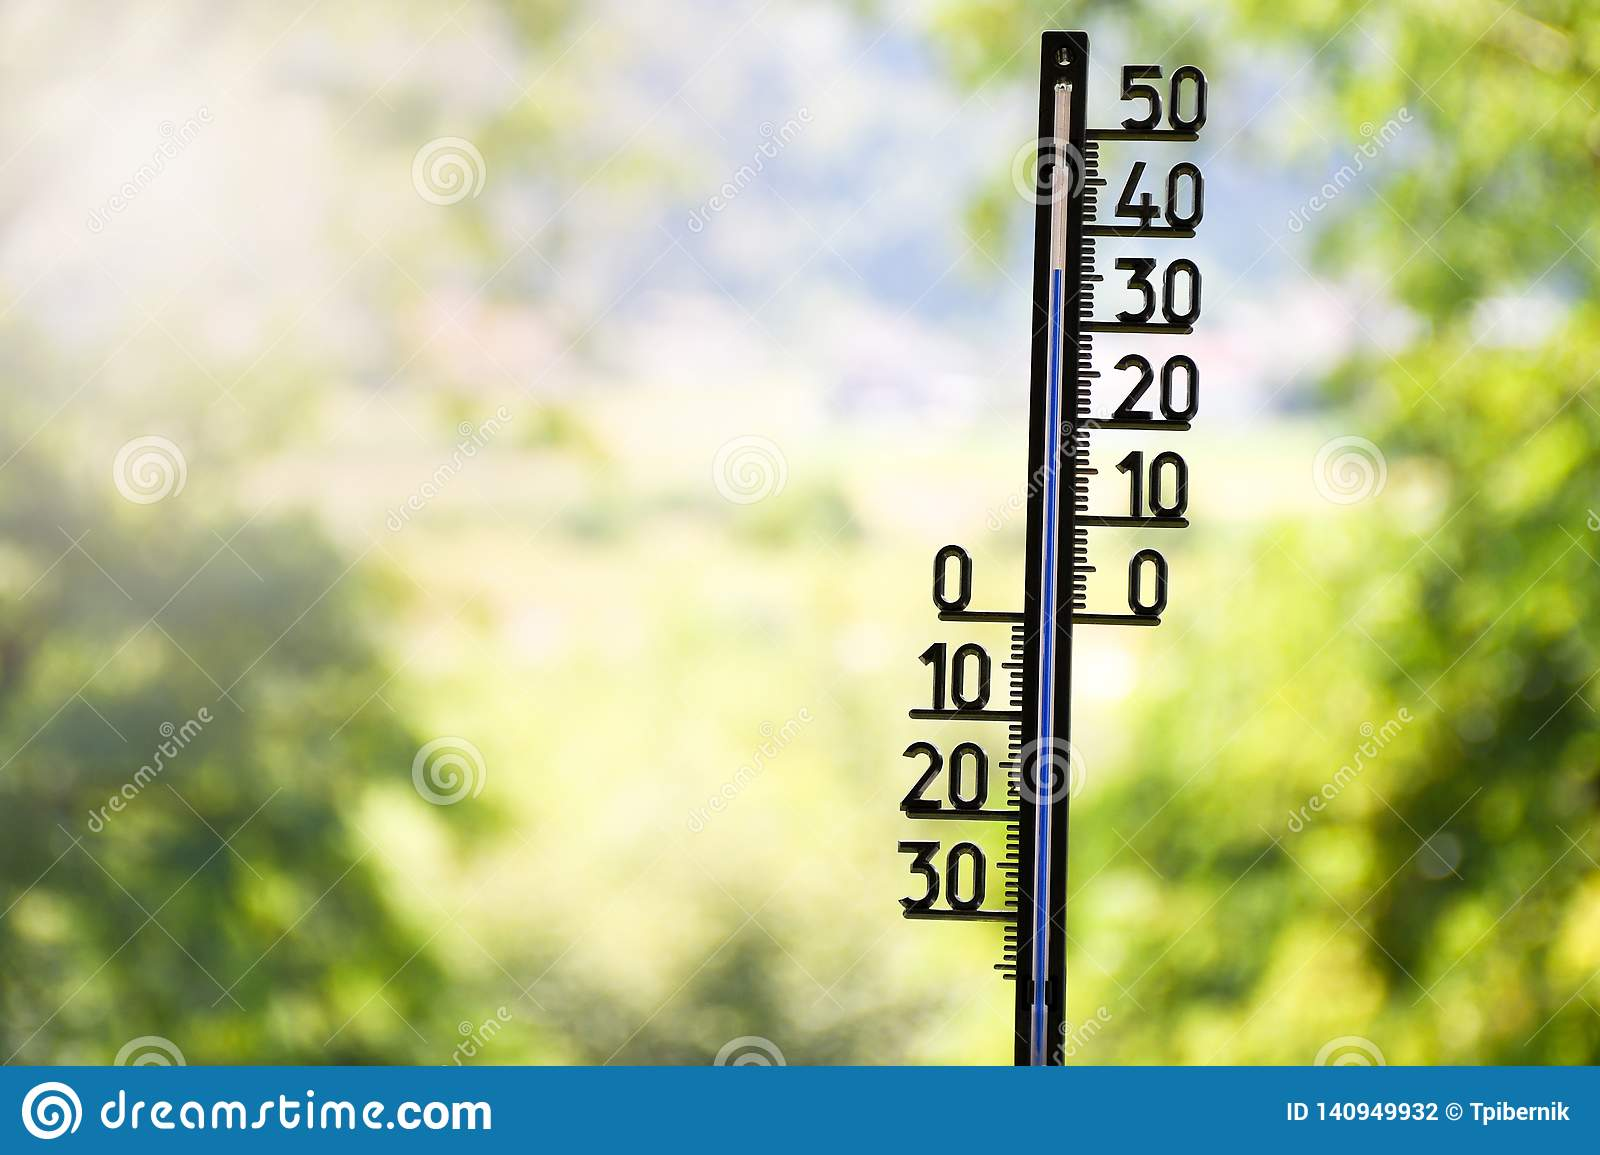 Outdoor thermometer showing 36 degrees Celsius